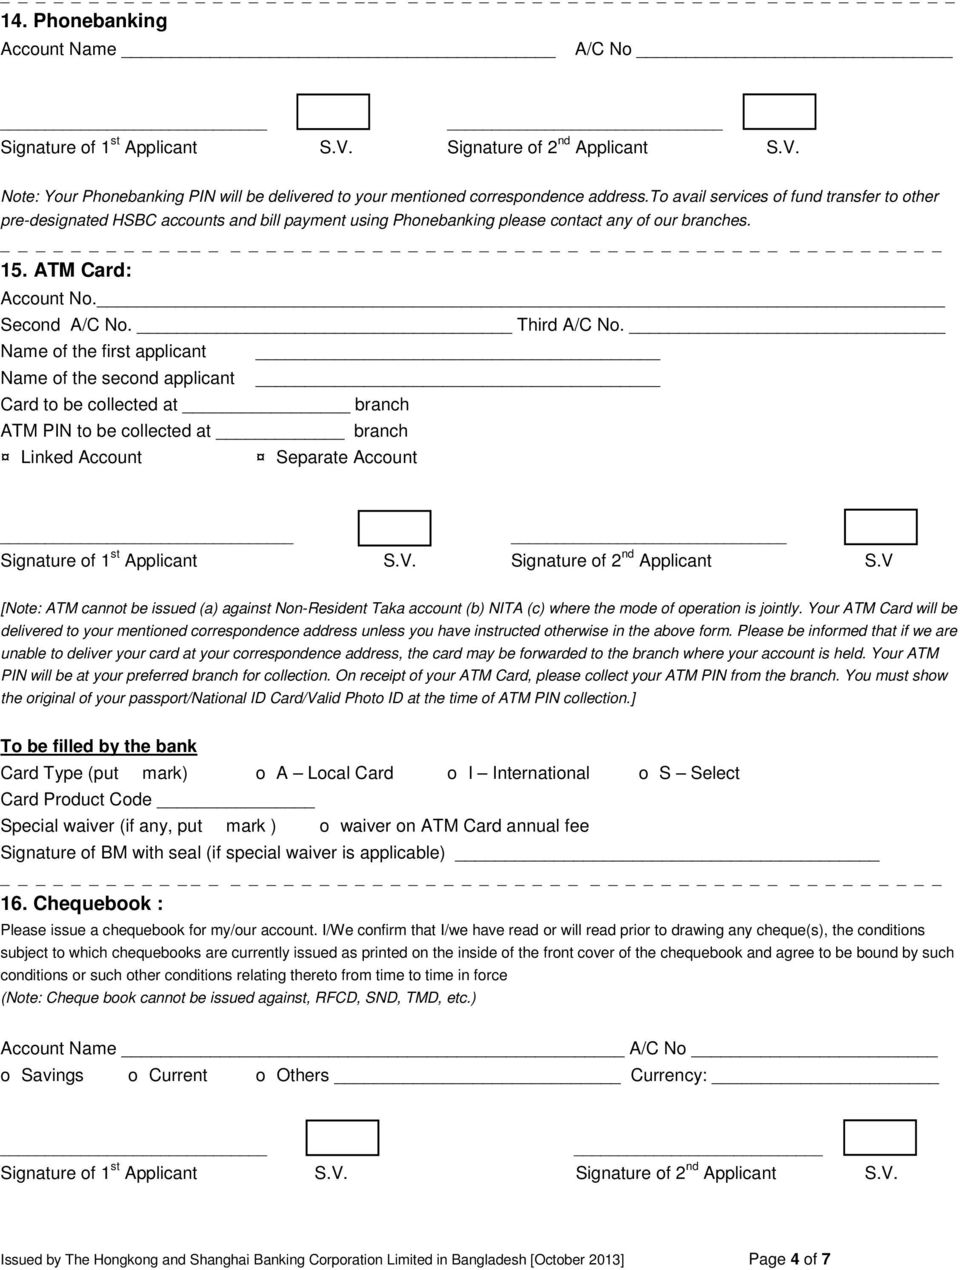 Personal Account Opening Form - PDF